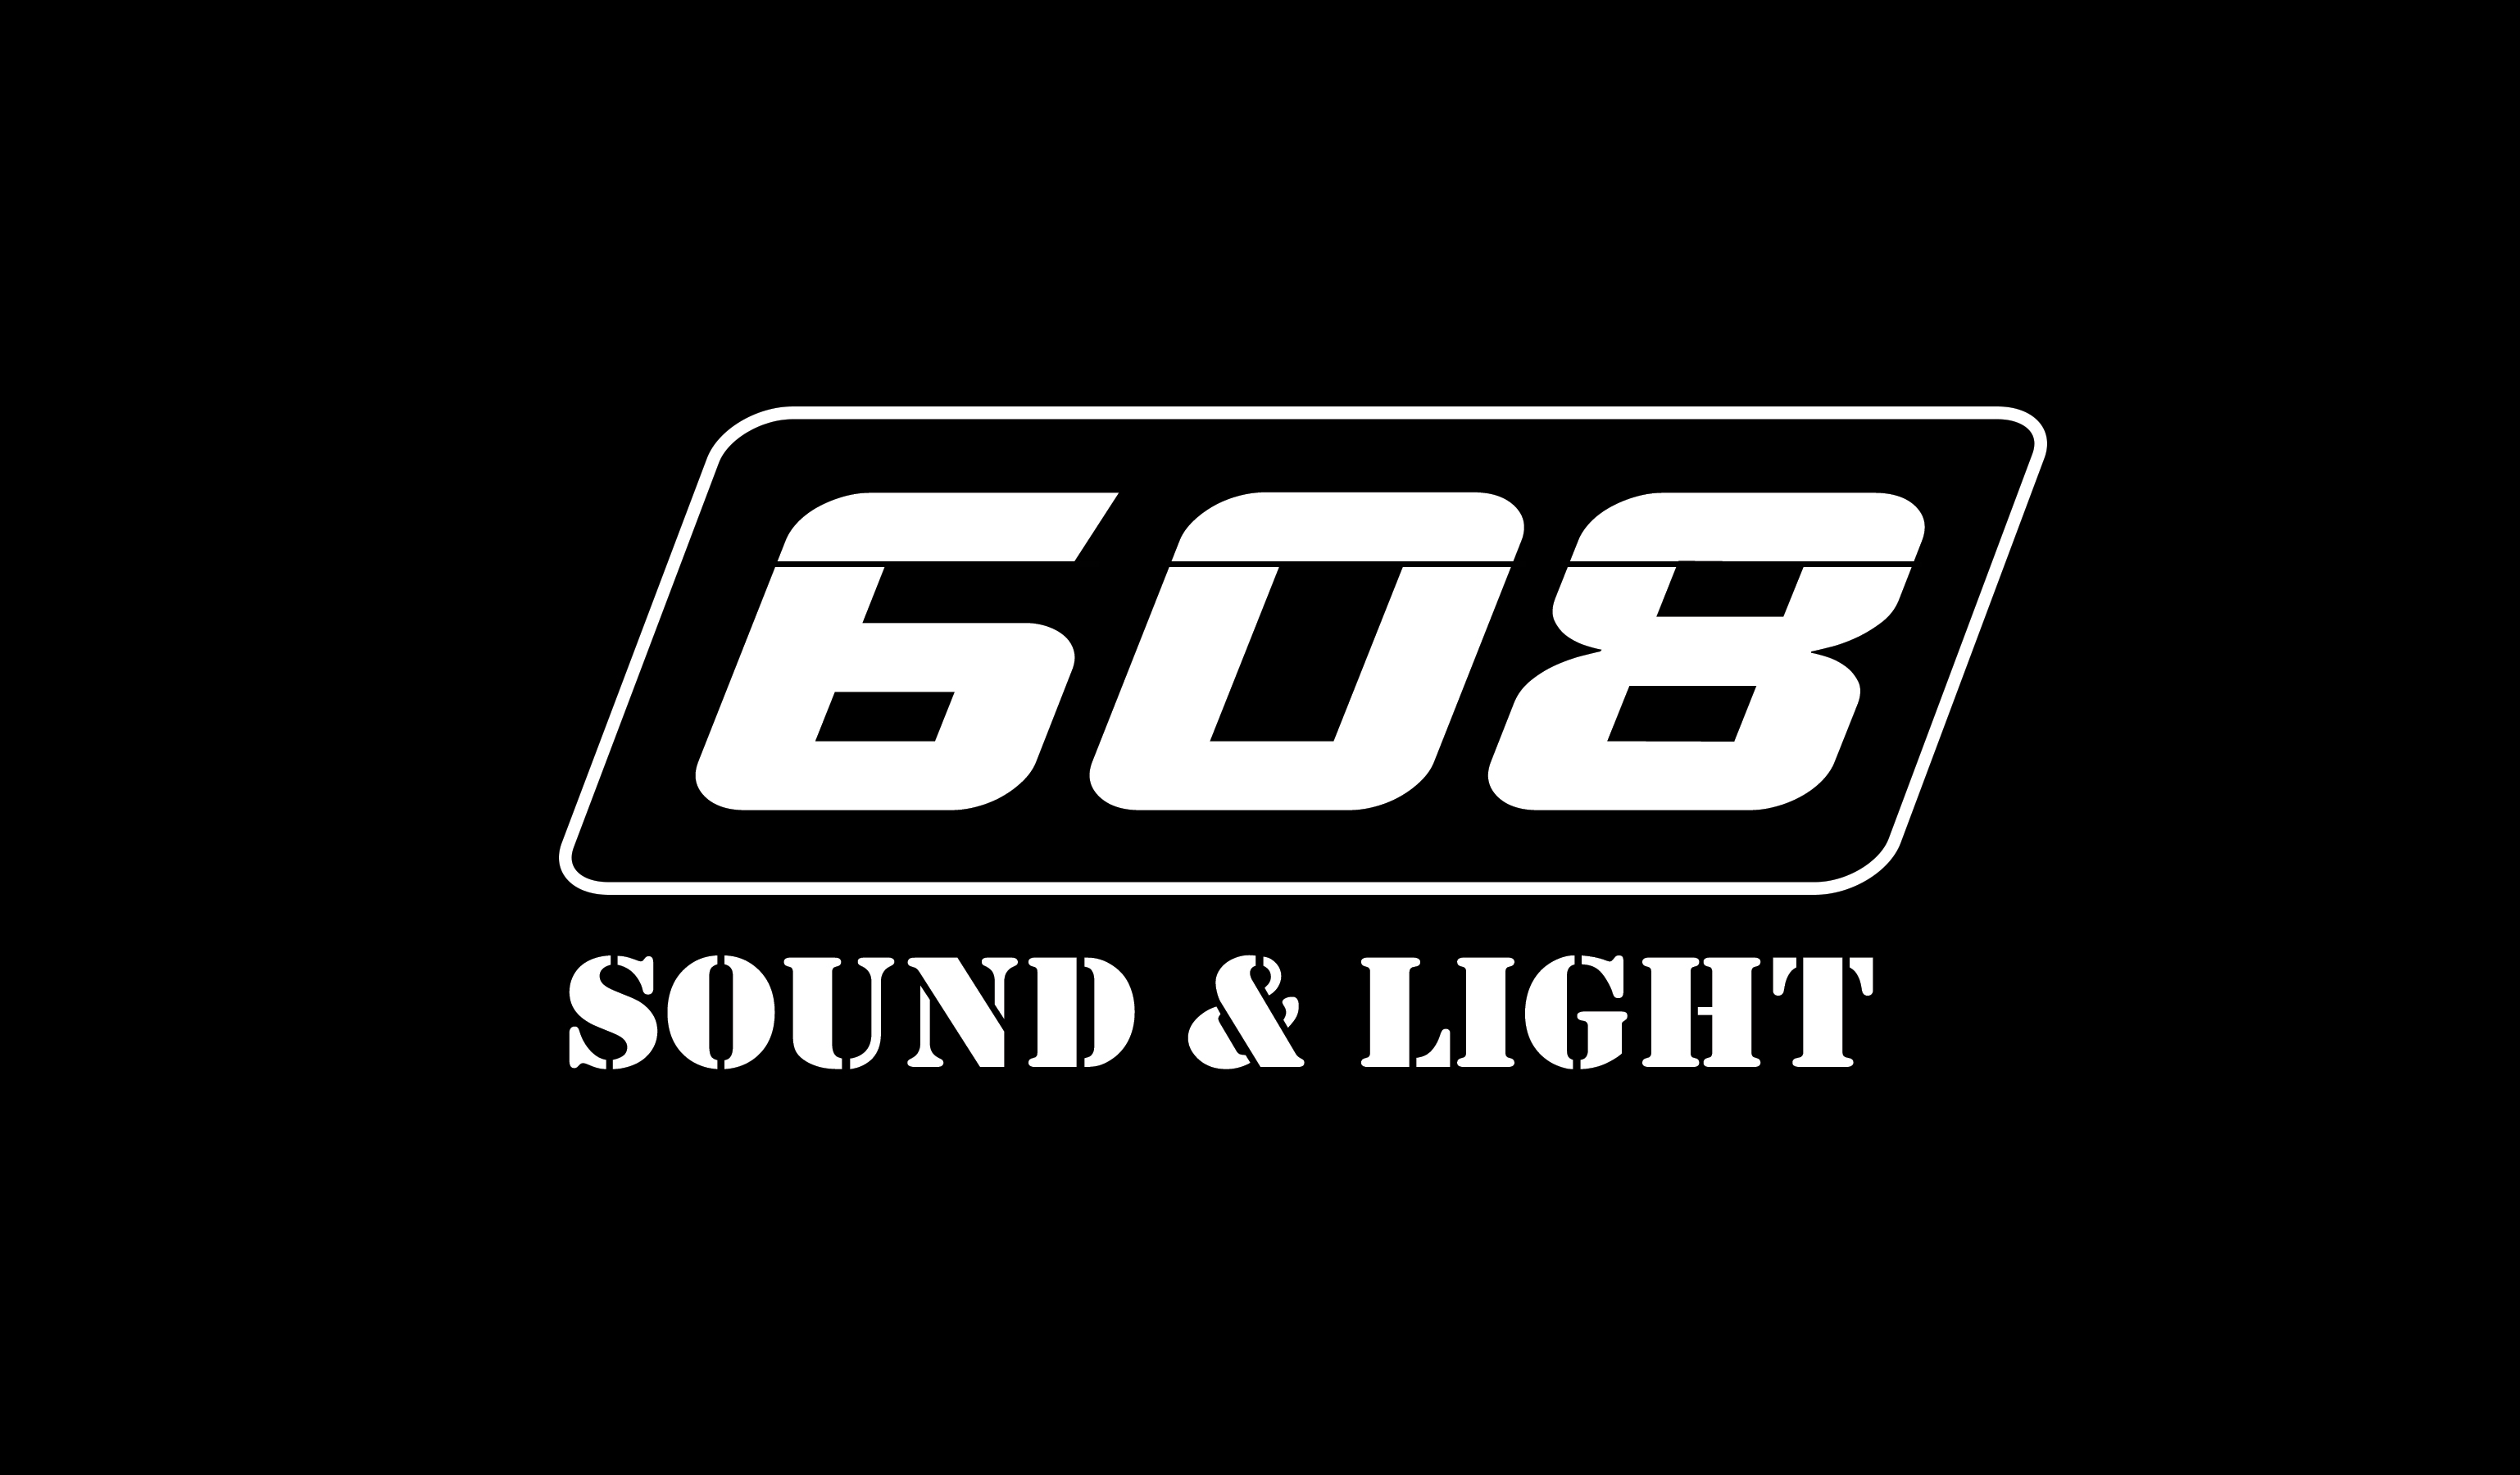 608 Sound and Light